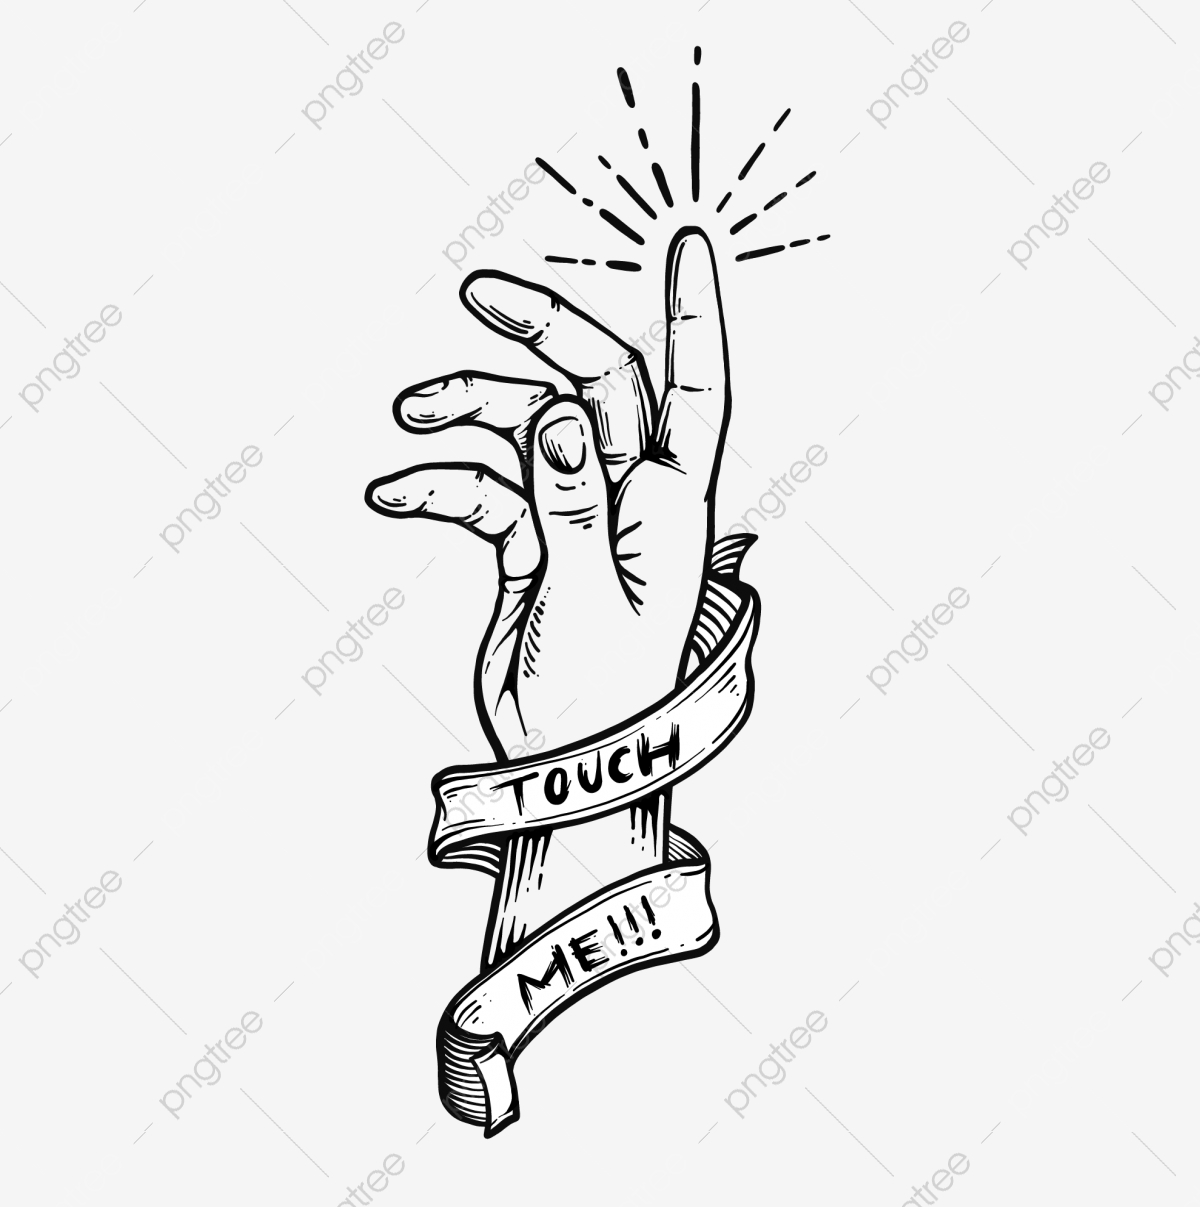 Hand Touch Png Images Vector And Psd Files Free Download On Pngtree Free icons of line drawing in various ui design styles for web, mobile, and graphic design projects. https pngtree com freepng touch me gesture ribbon engraved style 5327360 html